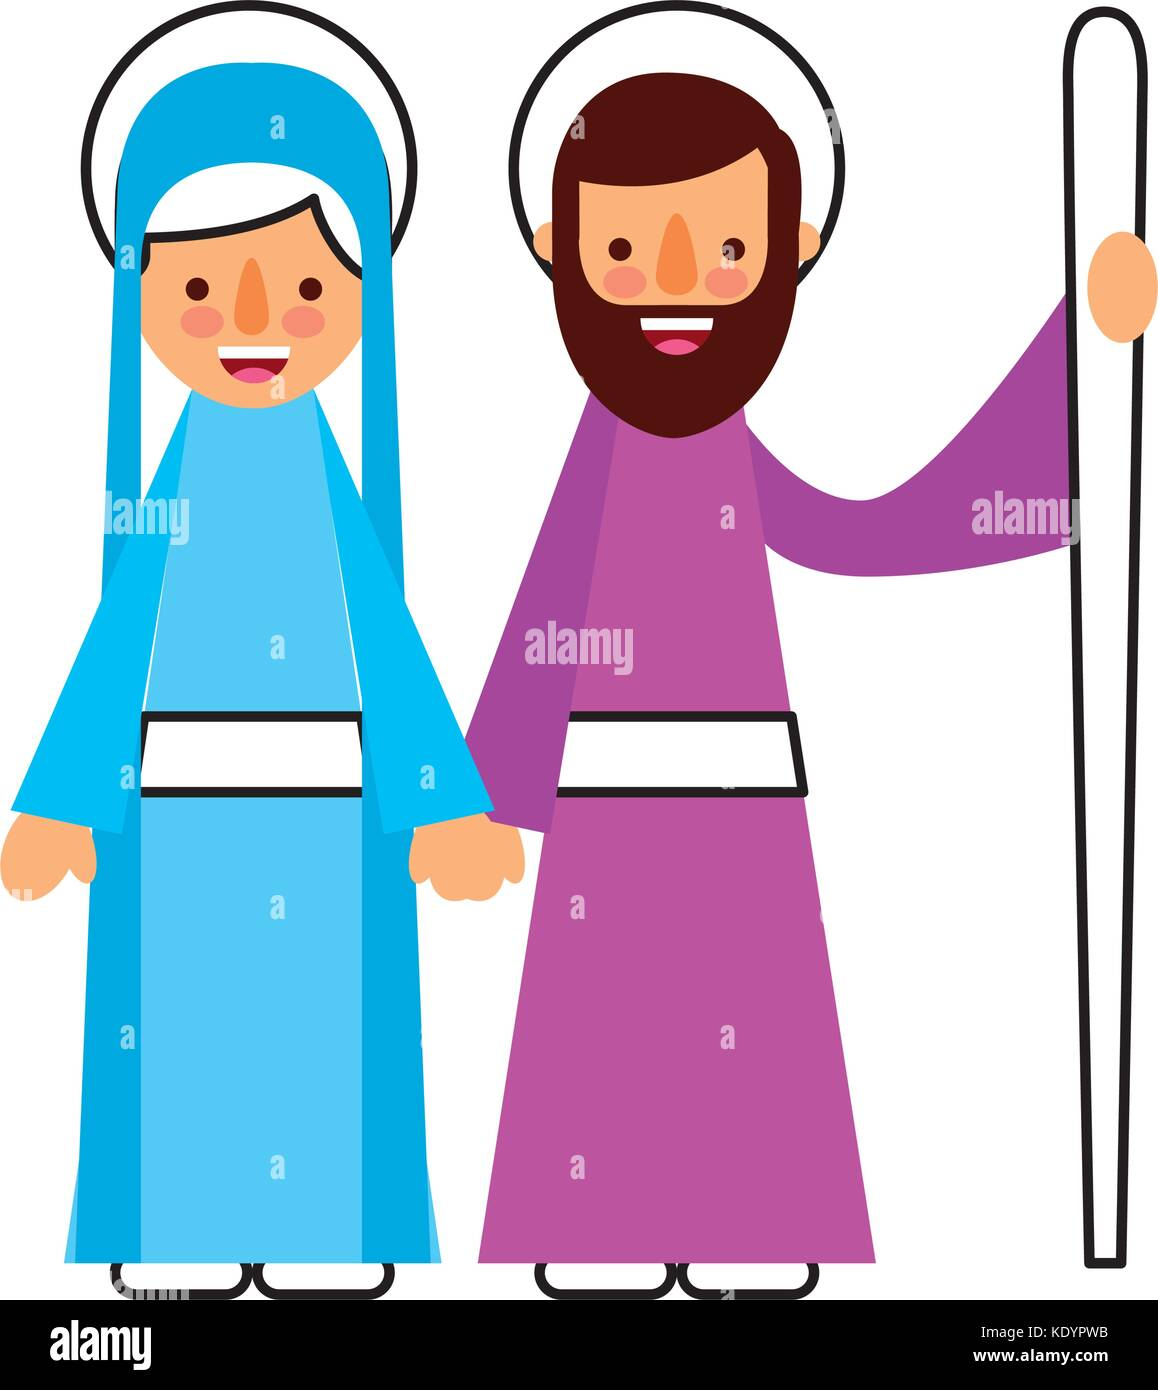 Joseph Mary Bethlehem Stock Photos & Joseph Mary Bethlehem Stock ...